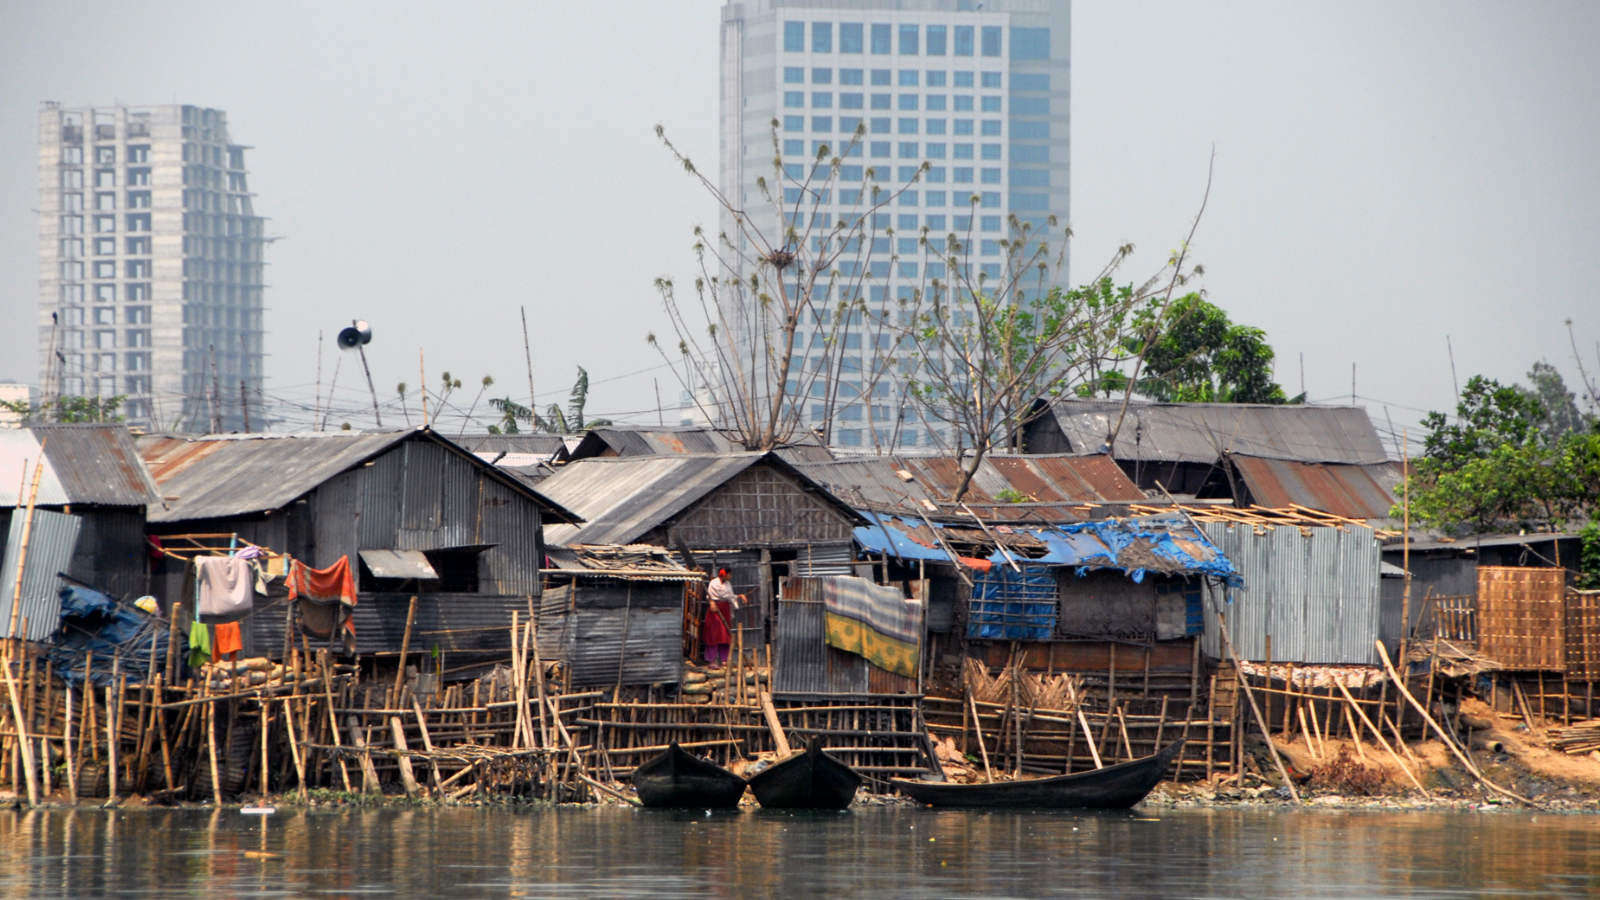 high-rise buildings and informal settlements in Dhaka